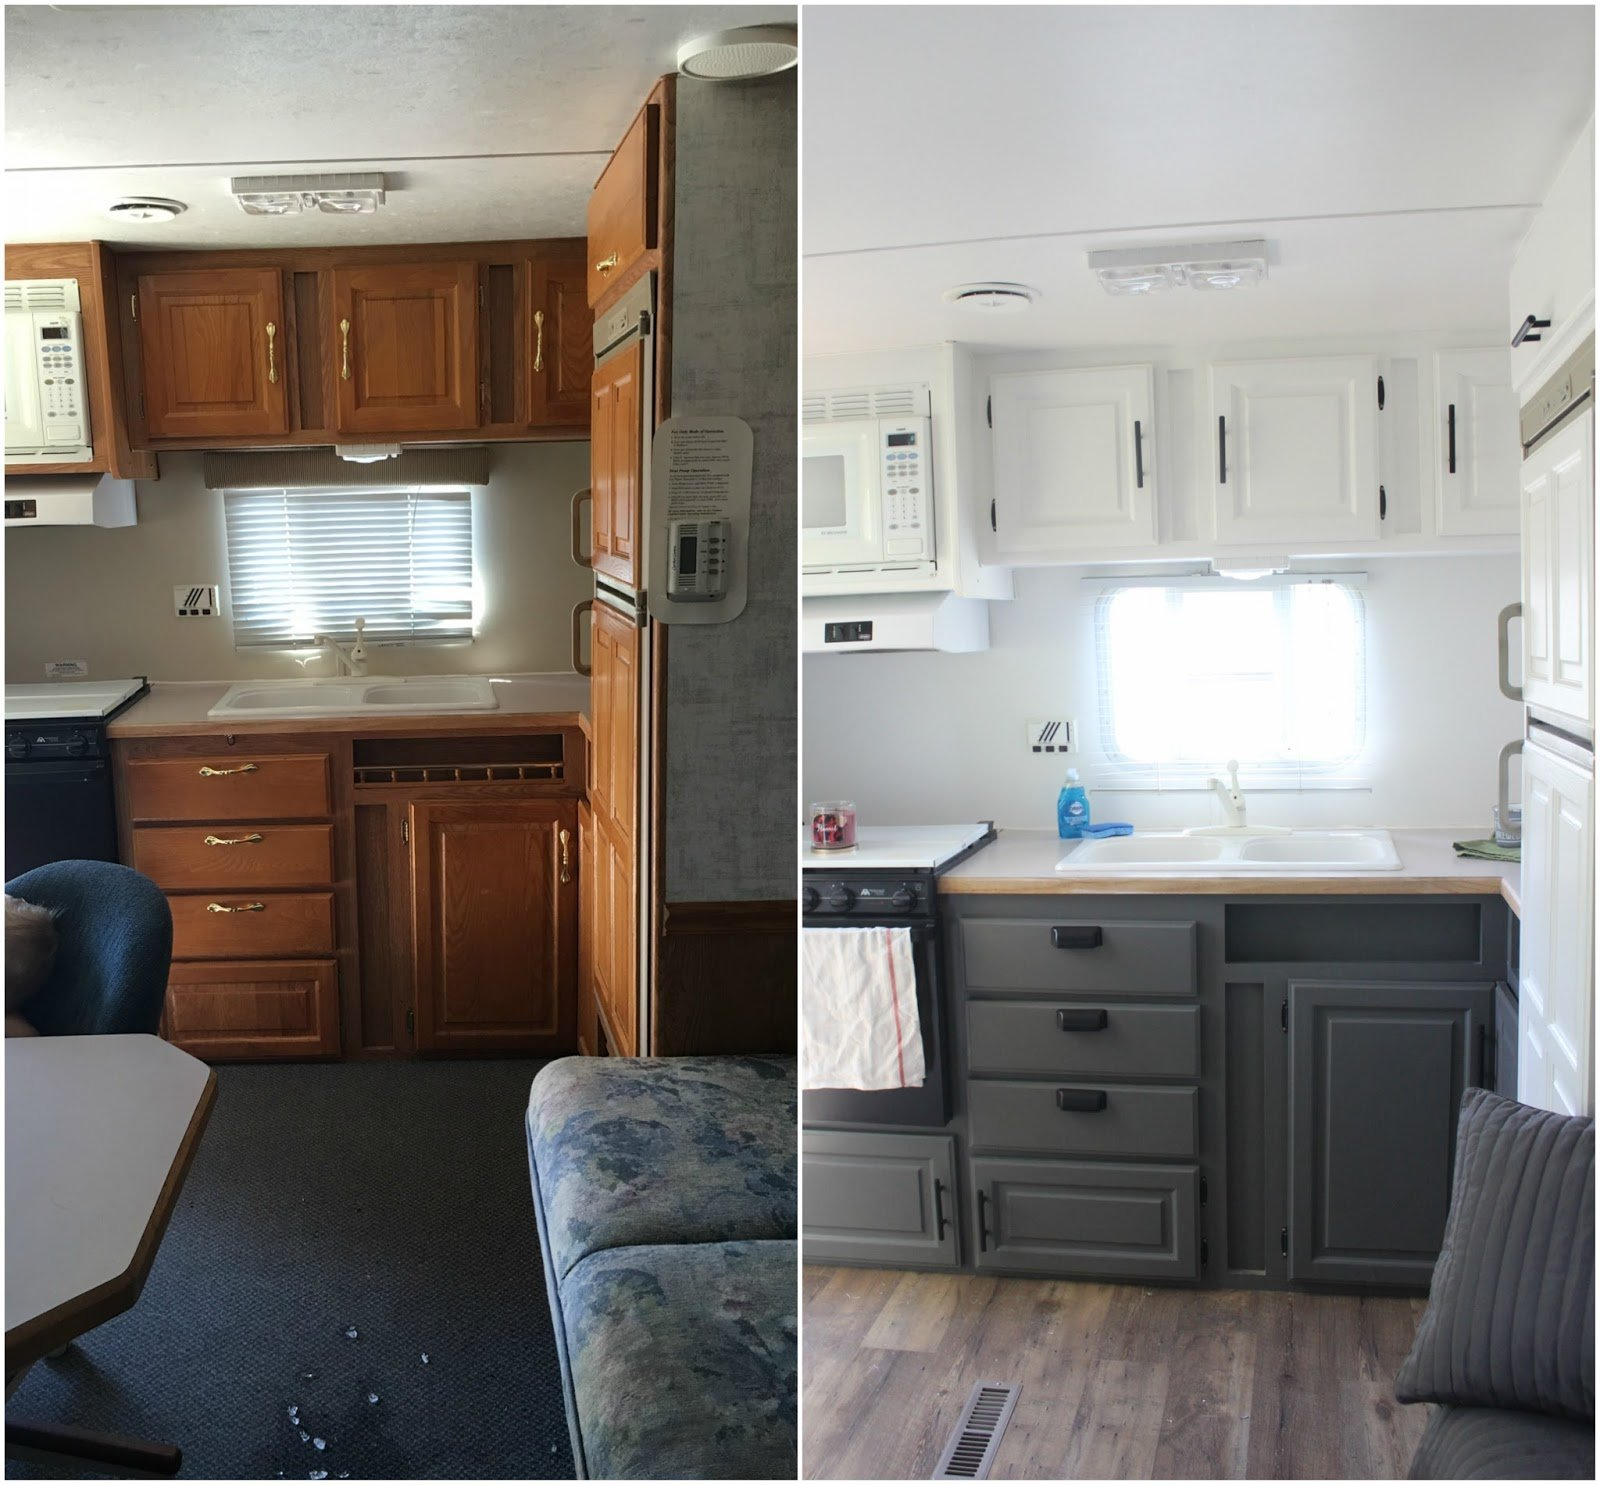 Camper Remodel Ideas 54 - decoratoo on Remodeling Ideas  id=91544